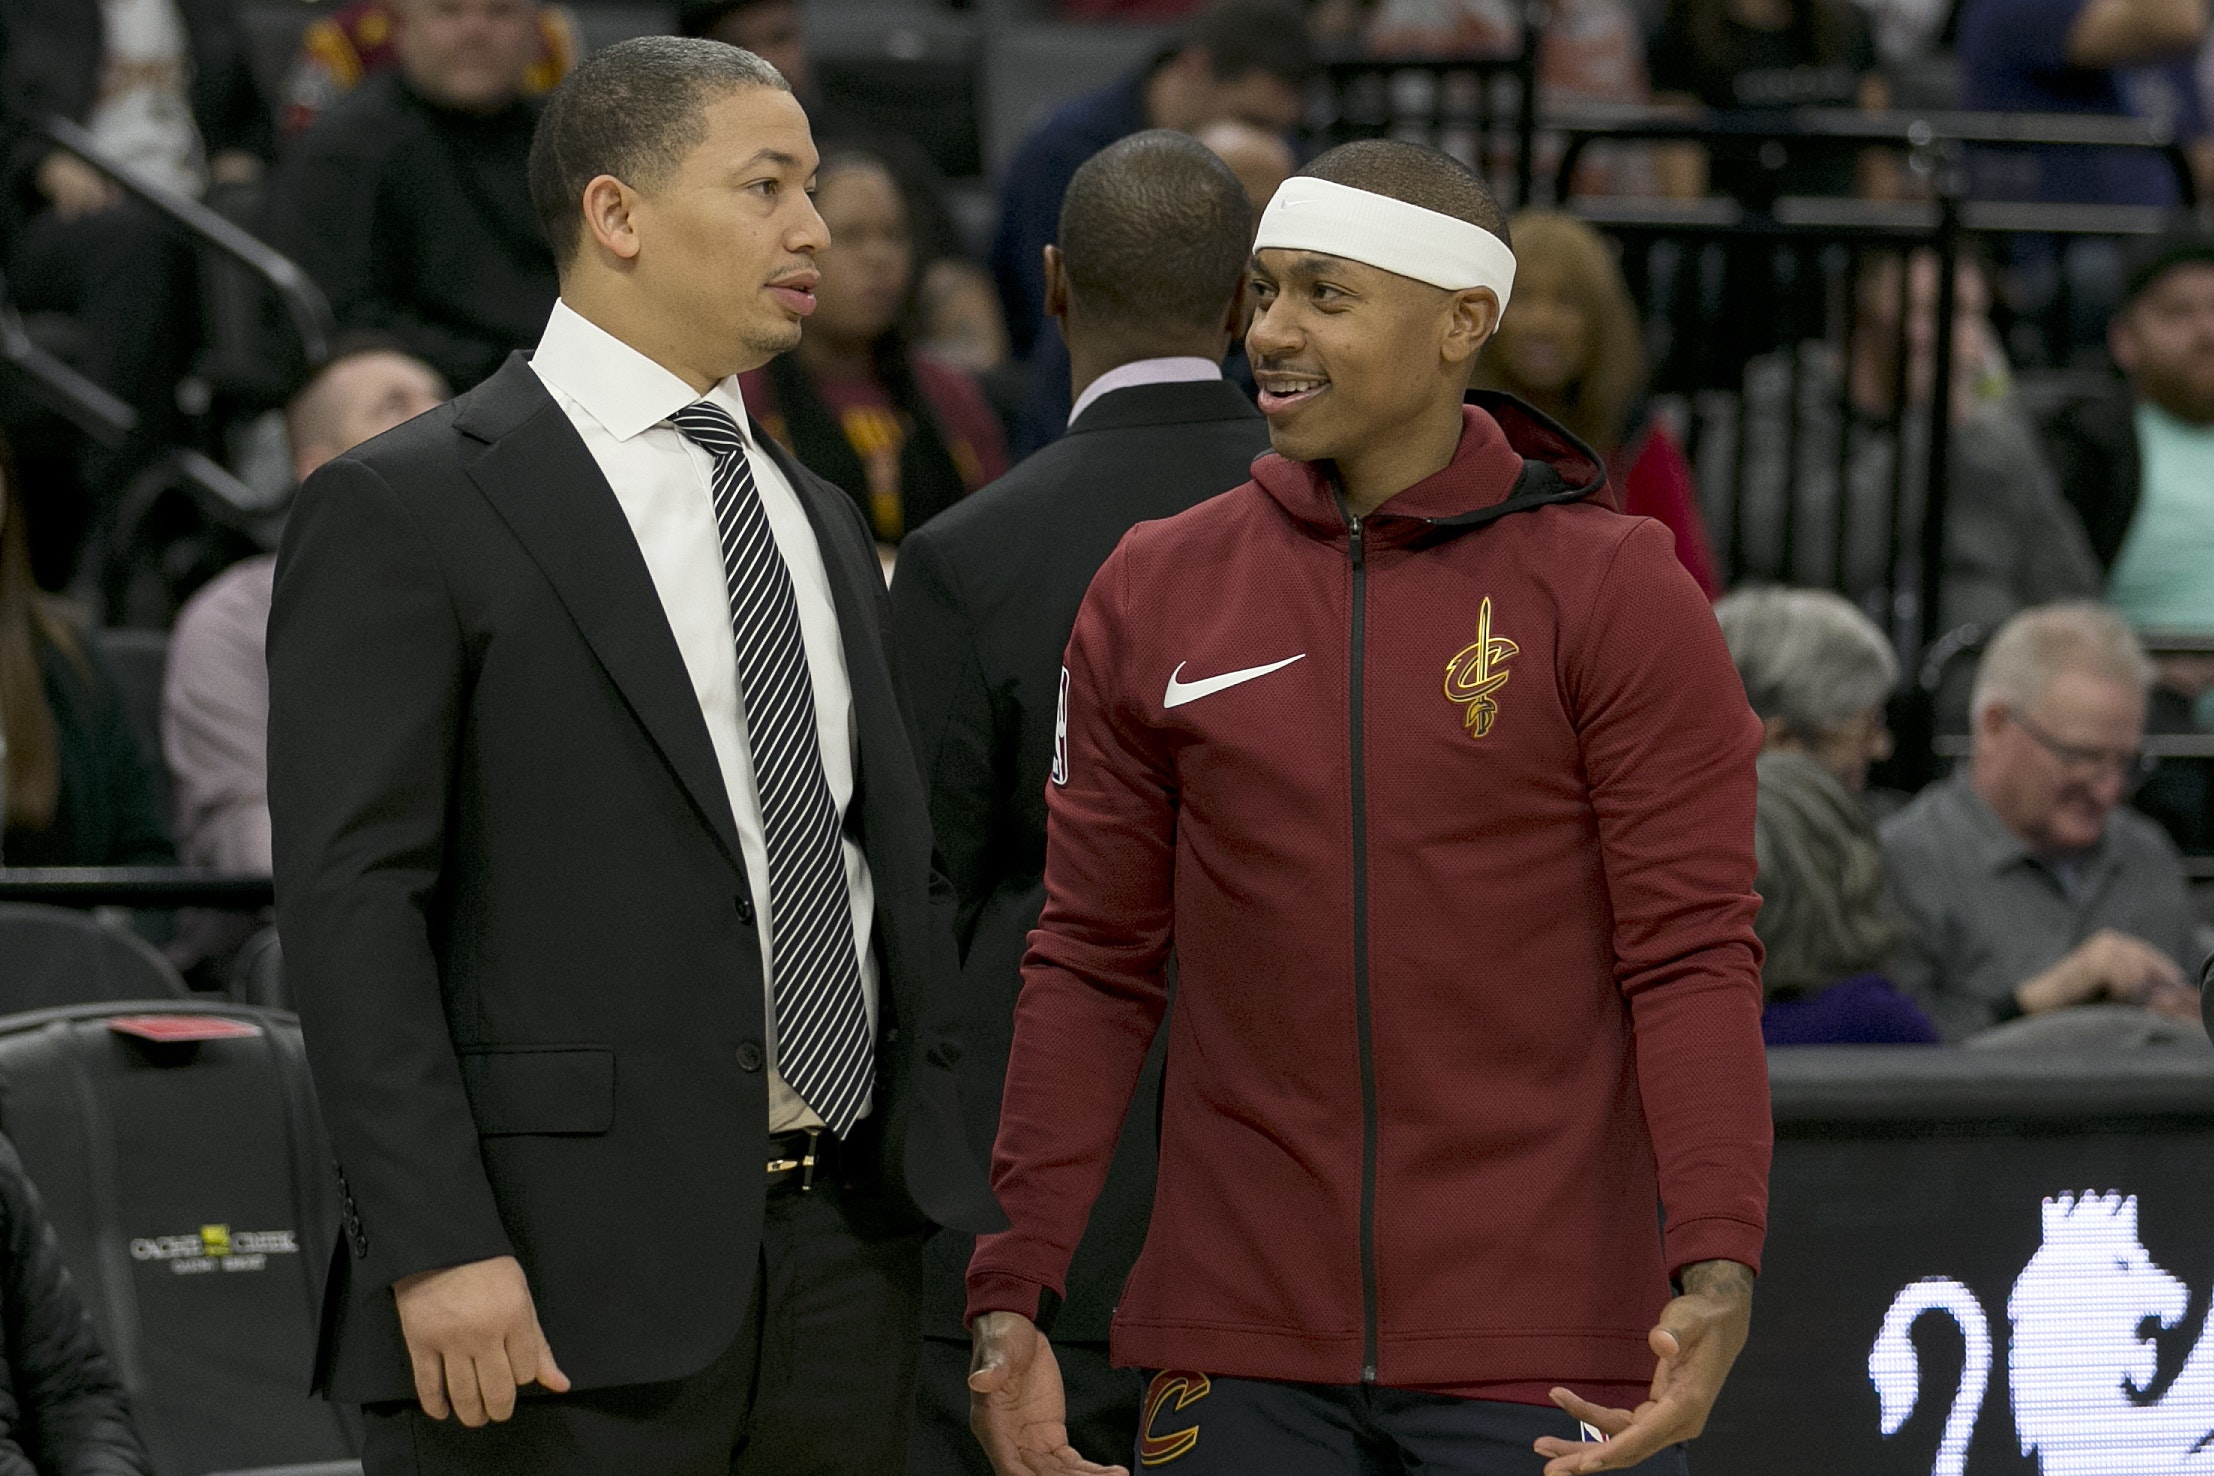 Isaiah Thomas, right, made his debut for the Cleveland Cavaliers in the win over the Portland Trail Blazers (Rich Pedroncelli/AP/PA)